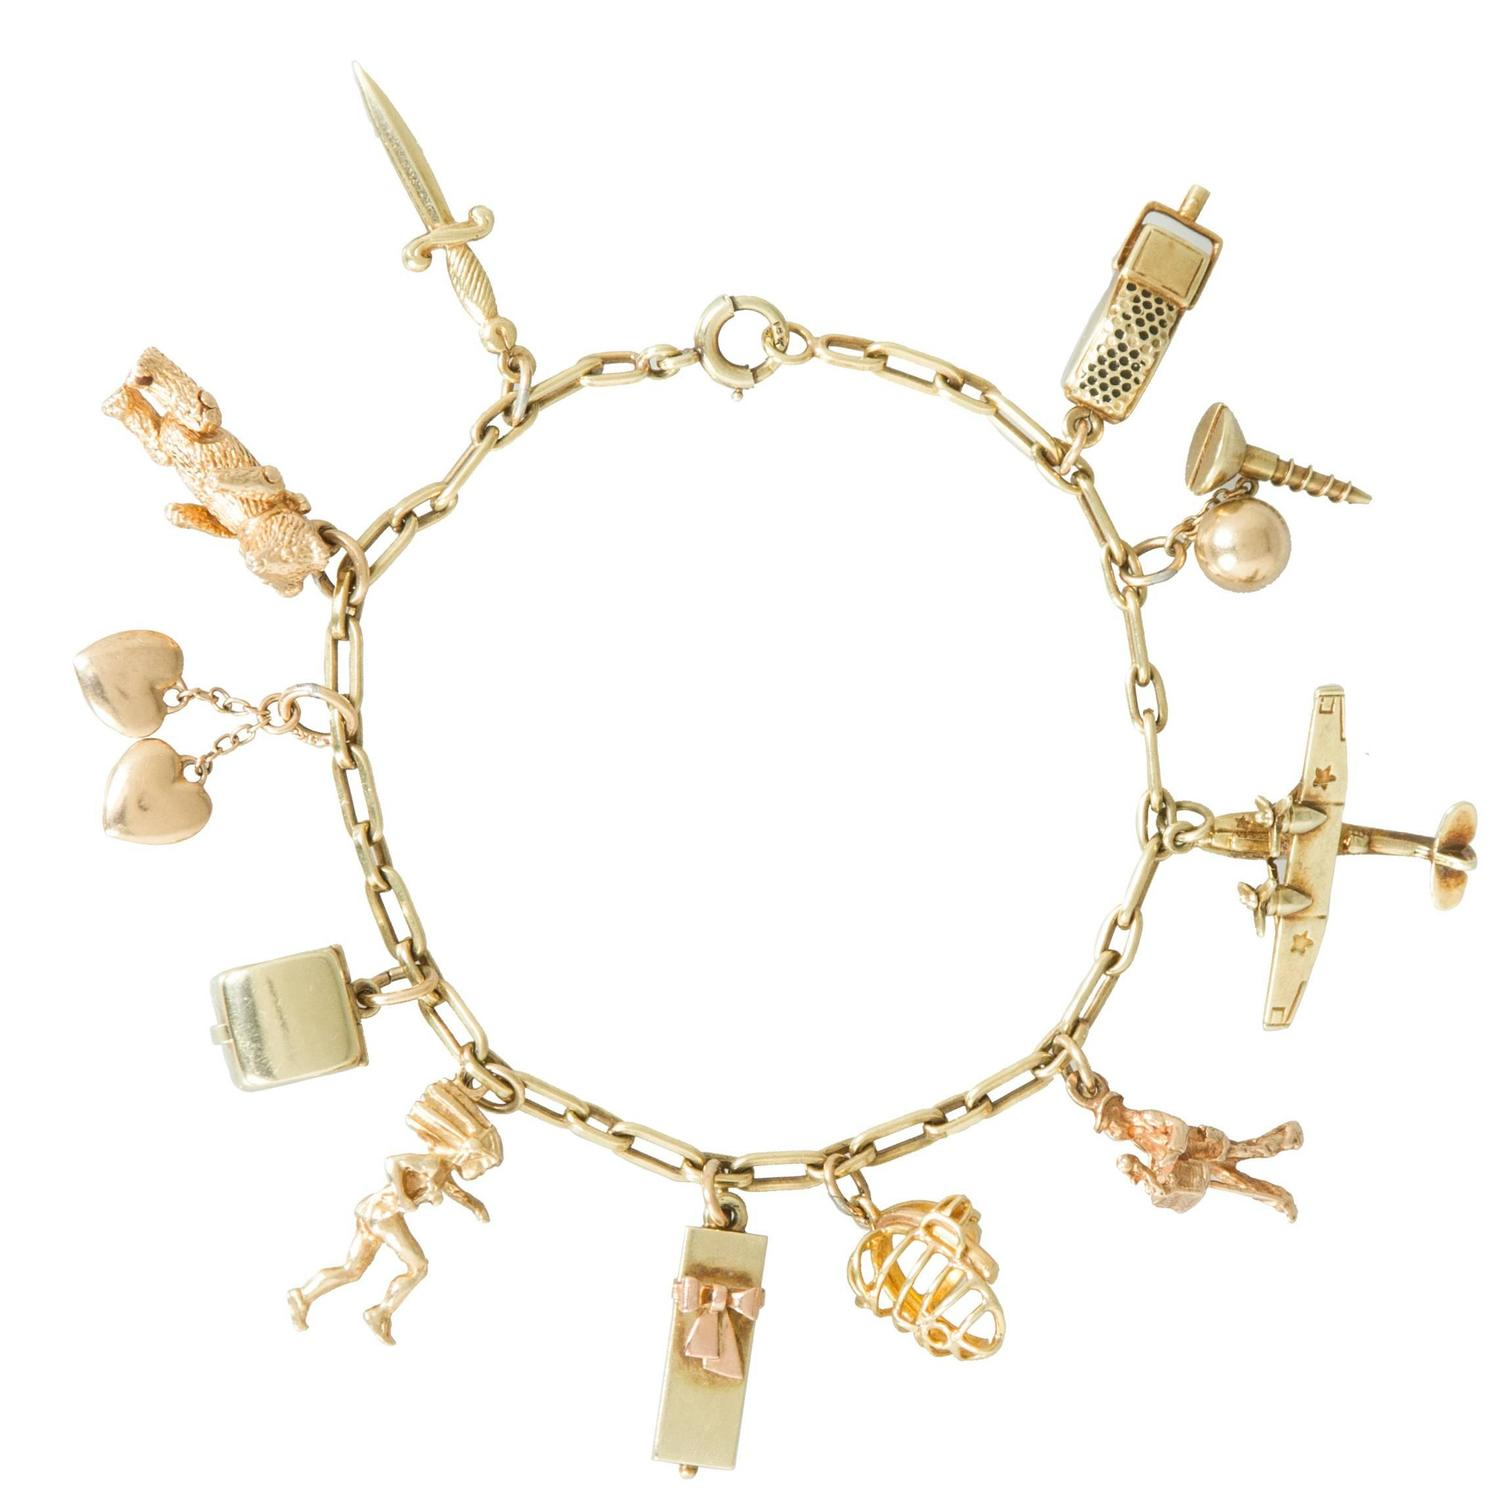 Gold Charm Bracelet with Mechanical Moving Charms at 1stdibs